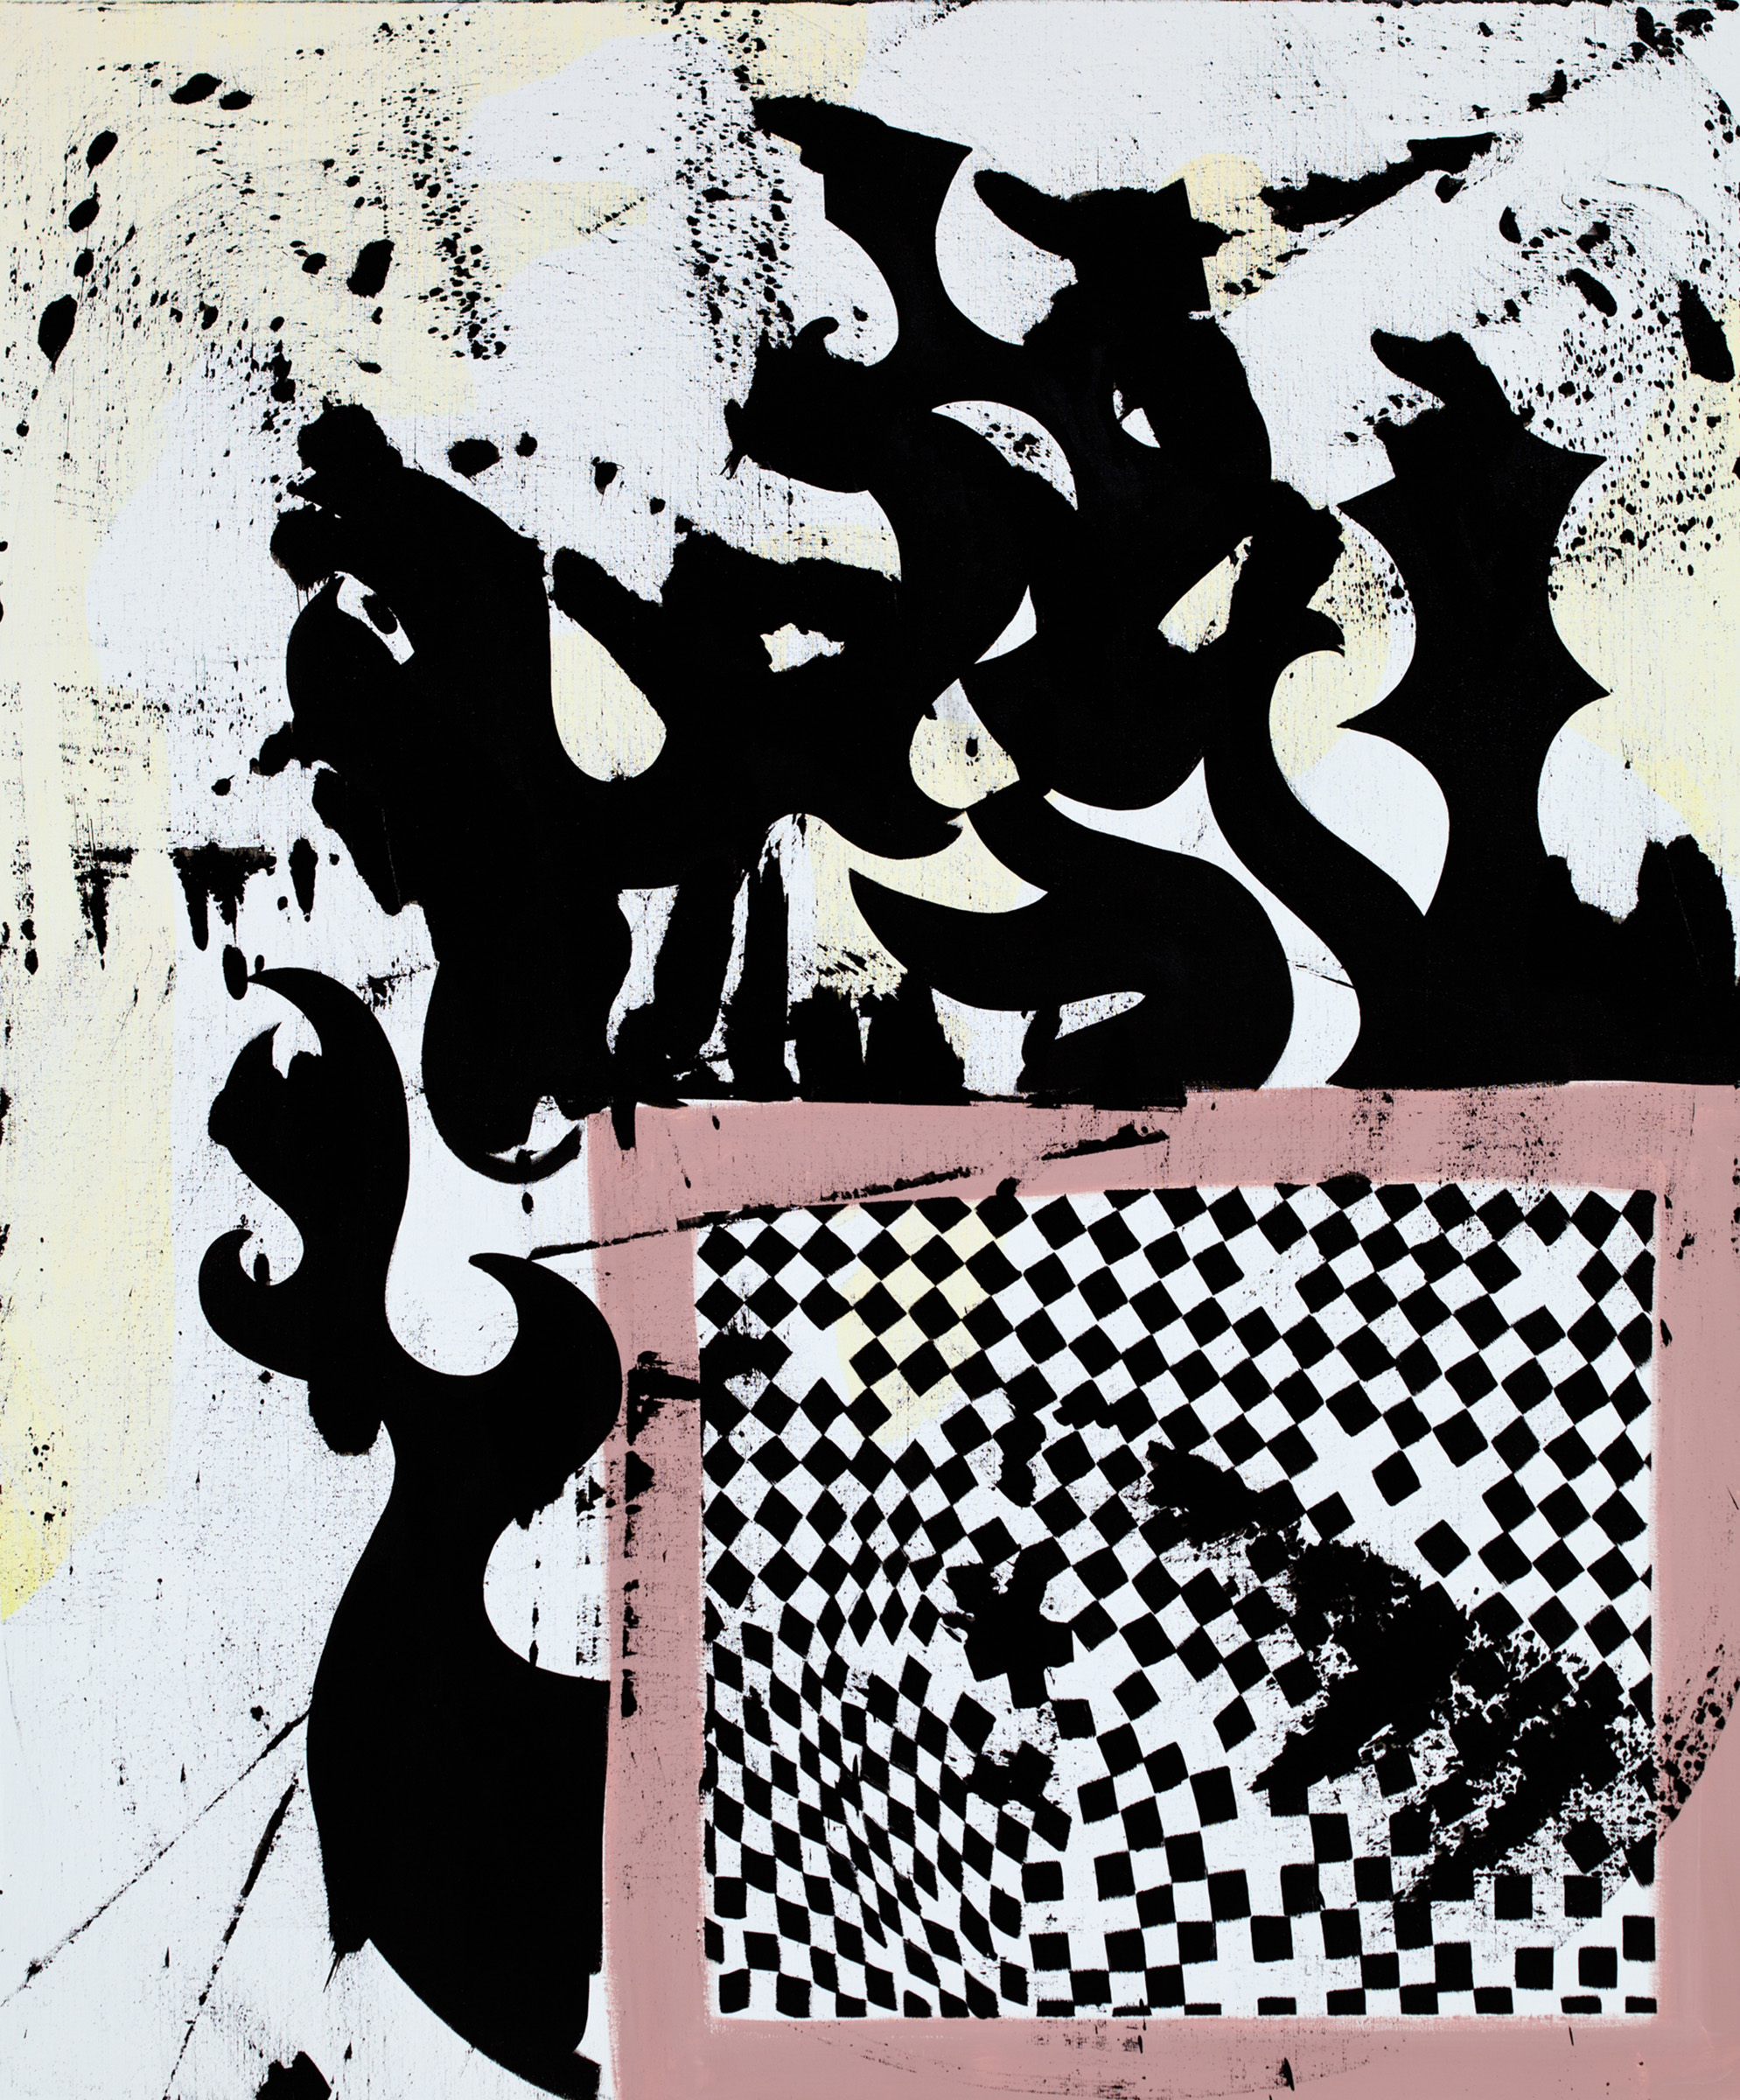 Hirshhorn Extends Charline von Heyl Show Shuttered by Shutdown